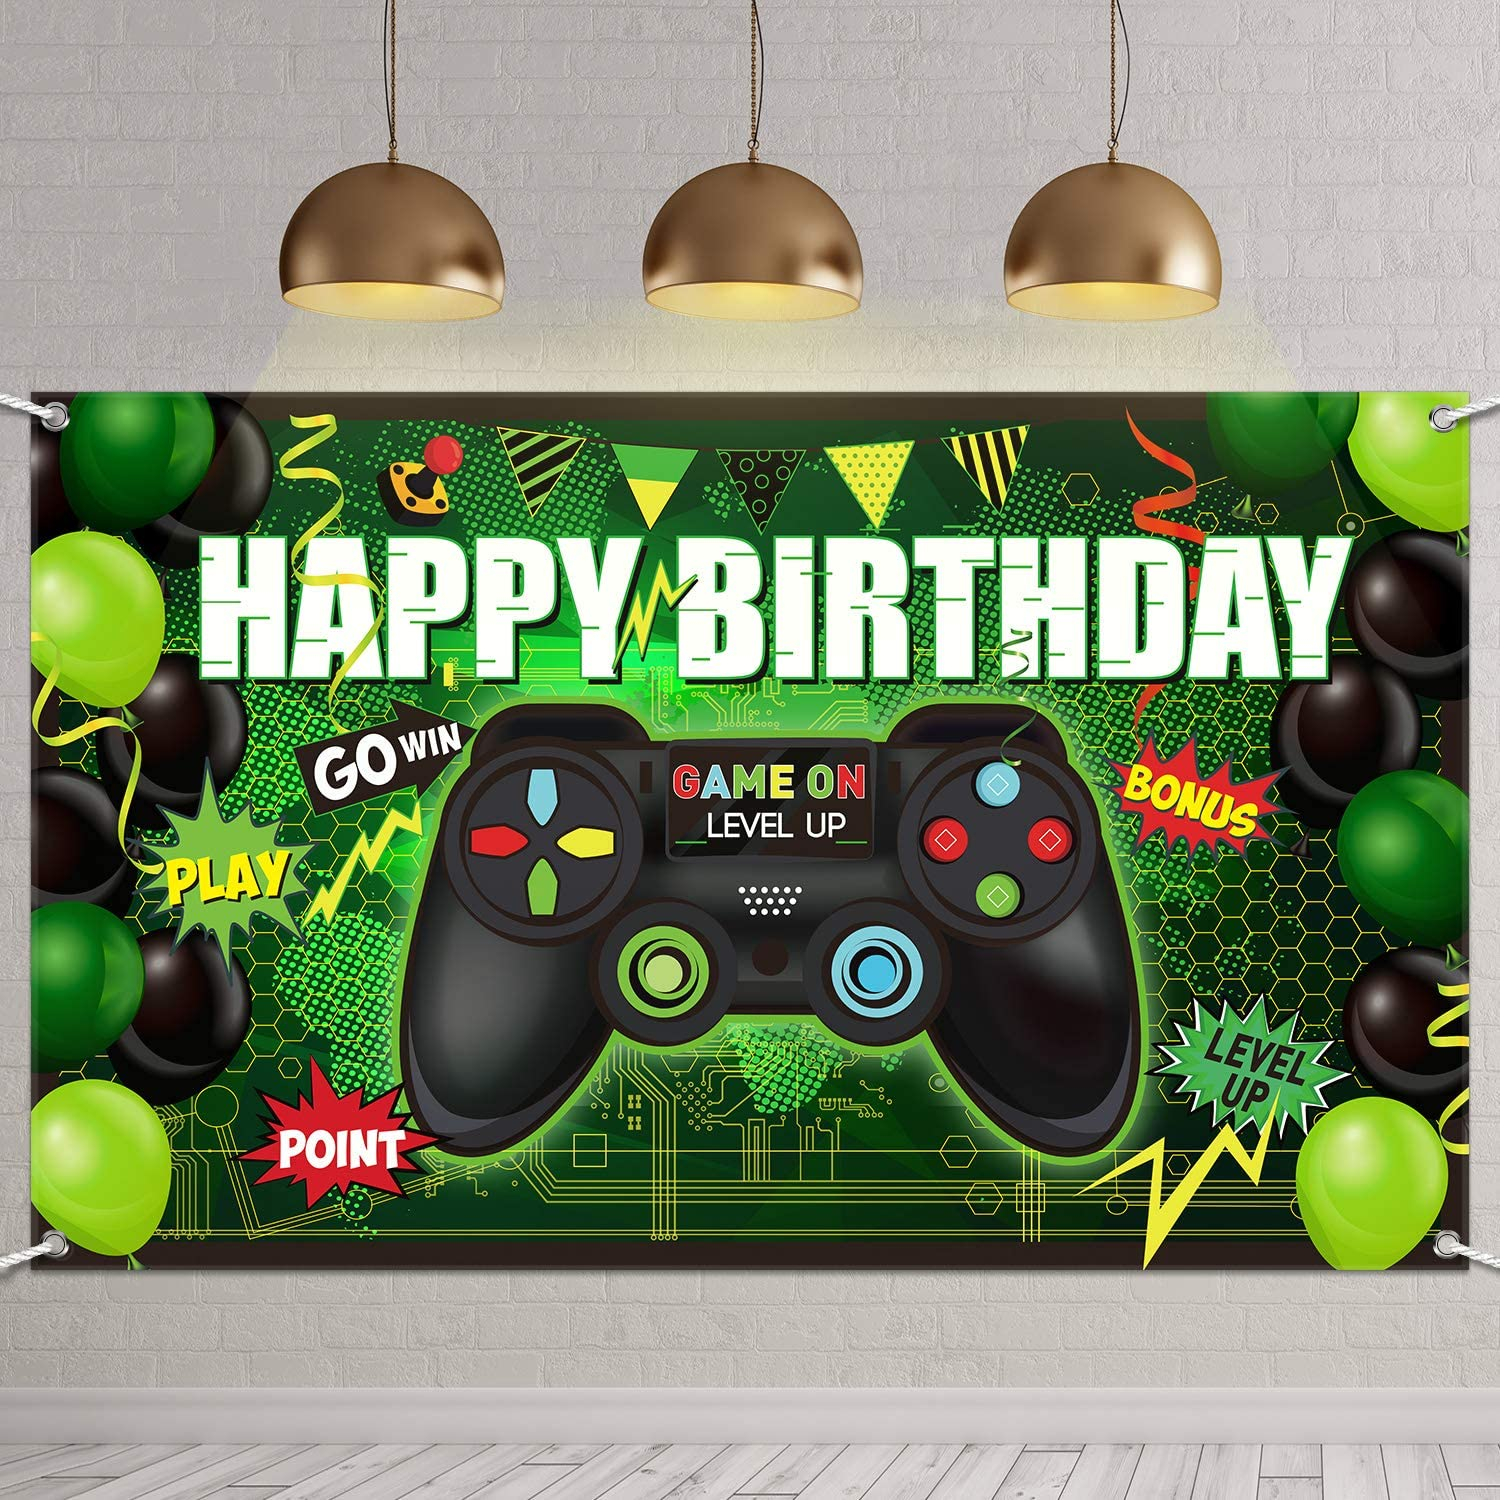 GAMING PARTY Backdrop Gamers Party Videogame Party Banner Decoration Video Game Birthday Background Videogames Party Gamer